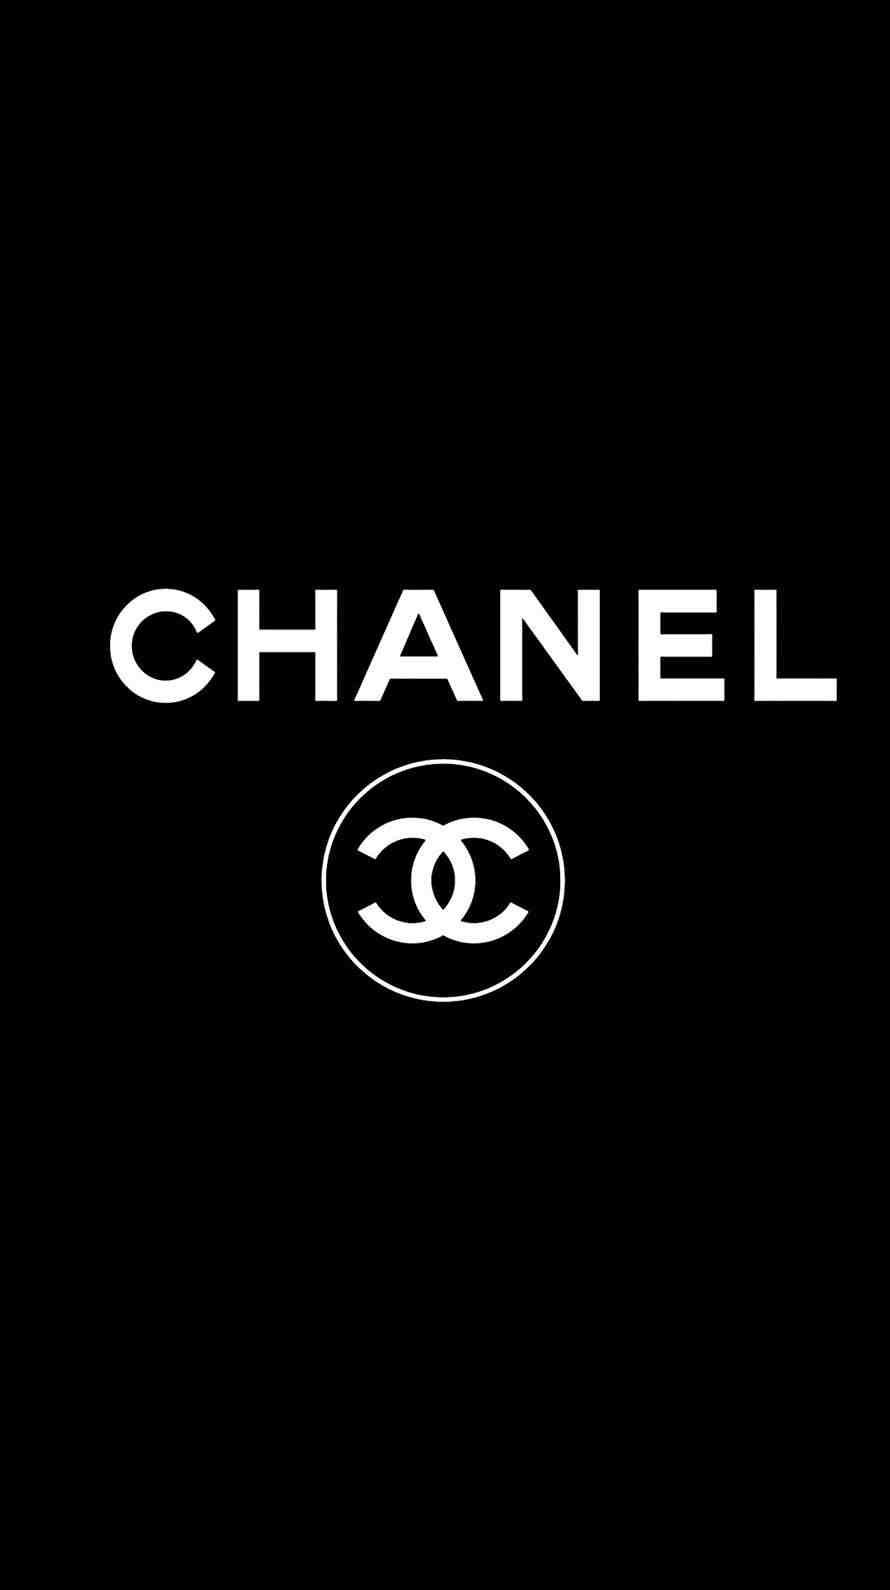 coco chanel iphone wallpaper iphone wallpapers